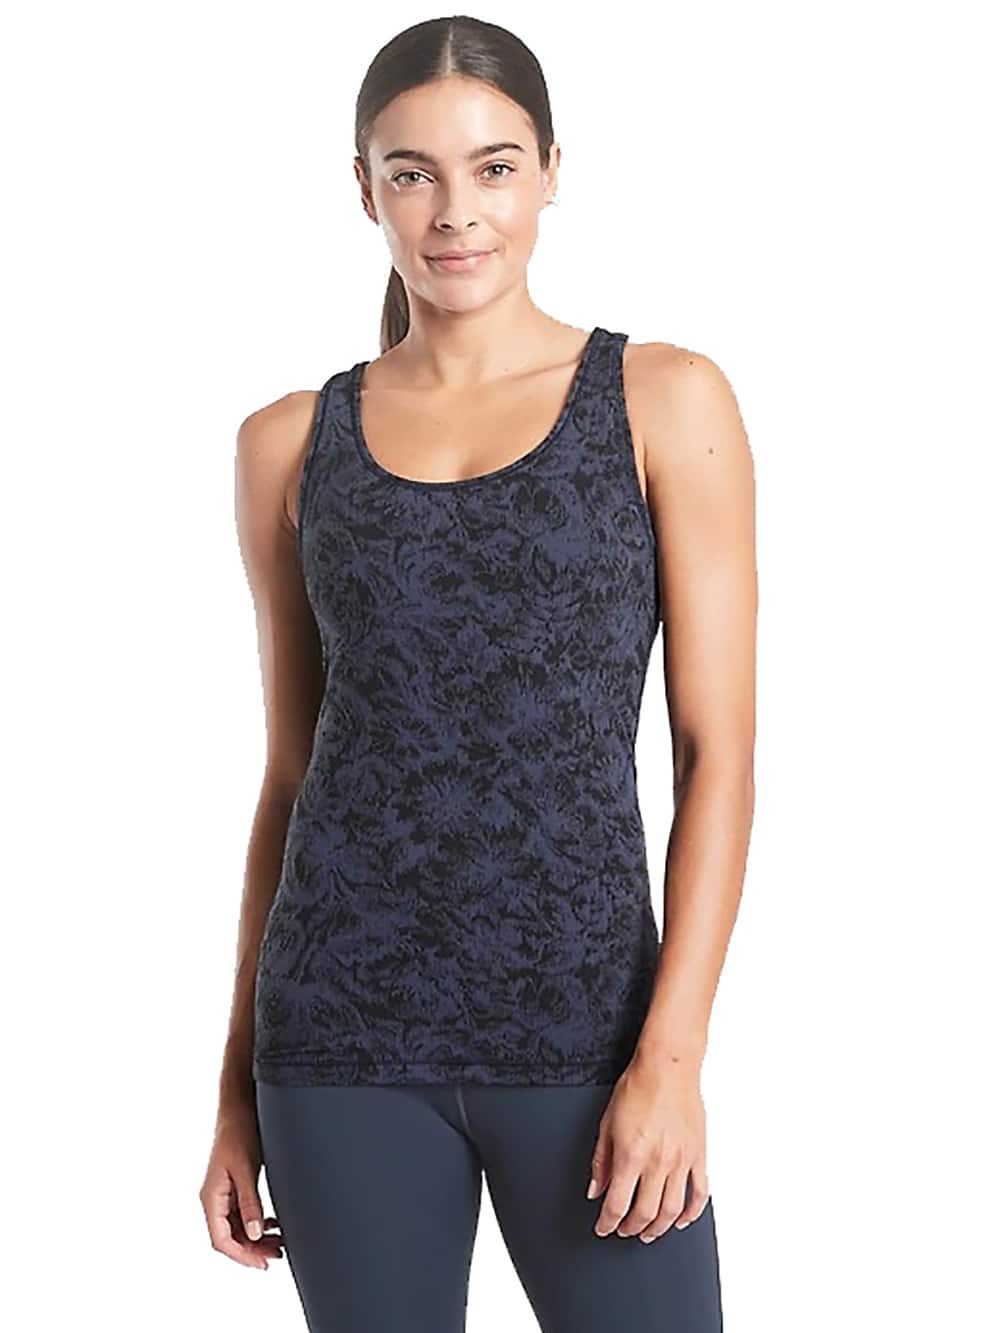 Athleta Up to 70% Off Styles thru 4/25 | Scoop Tank Texture $10, Jacquard Crew Sweater $24 & MORE + Free Pickup / FS for Select Silver, Luxe